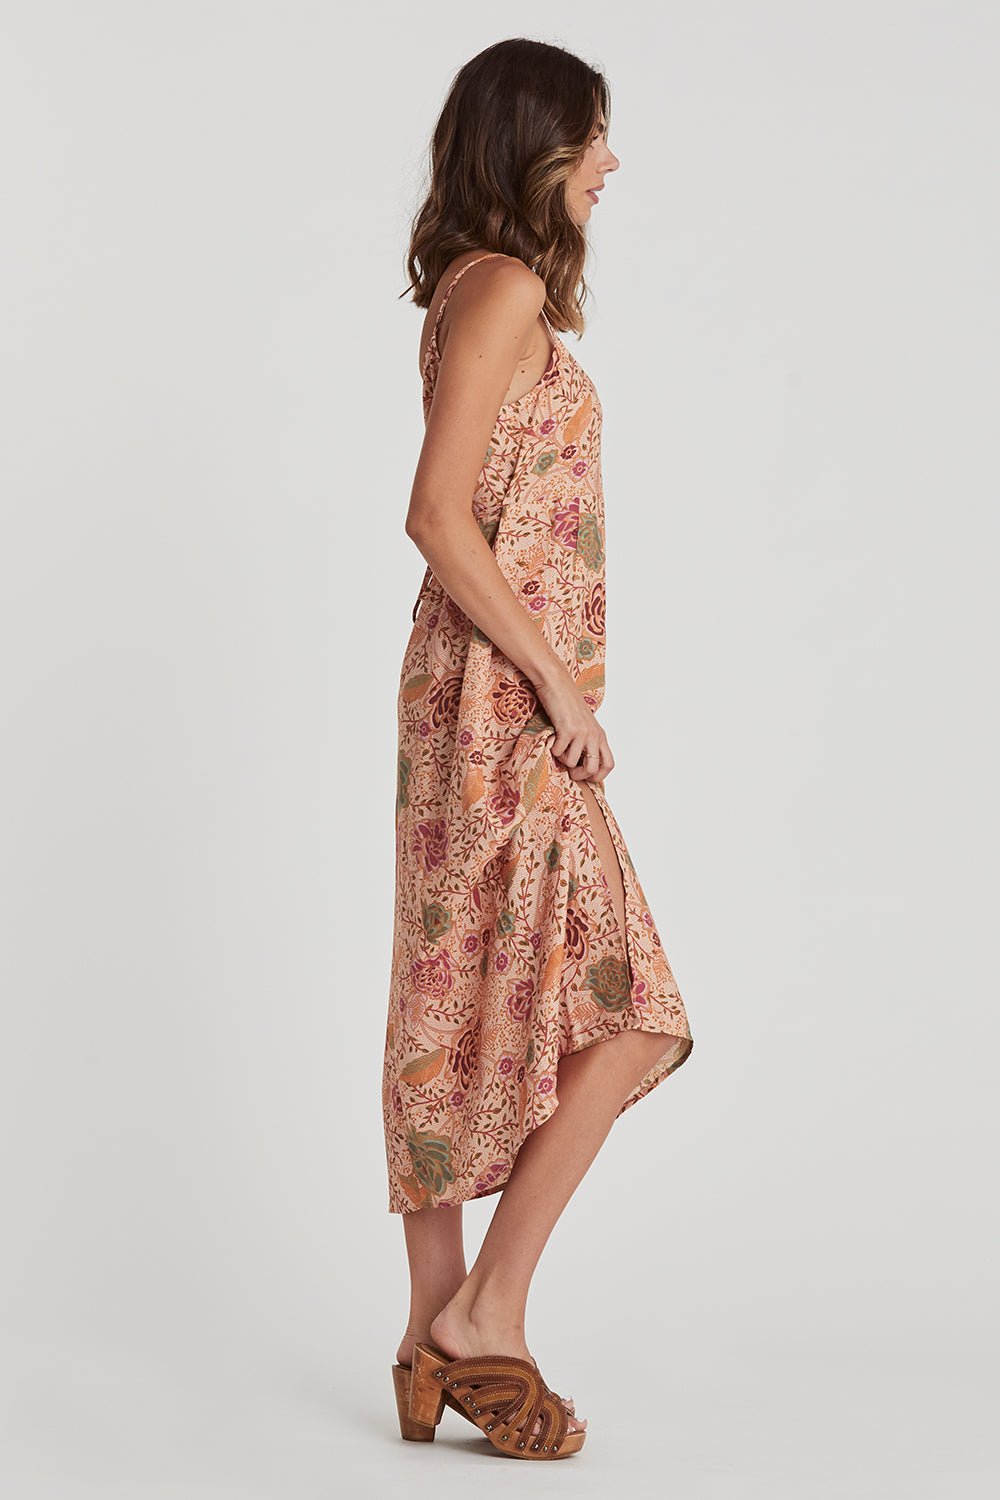 Leilani Slip Dress in Jungle Sands